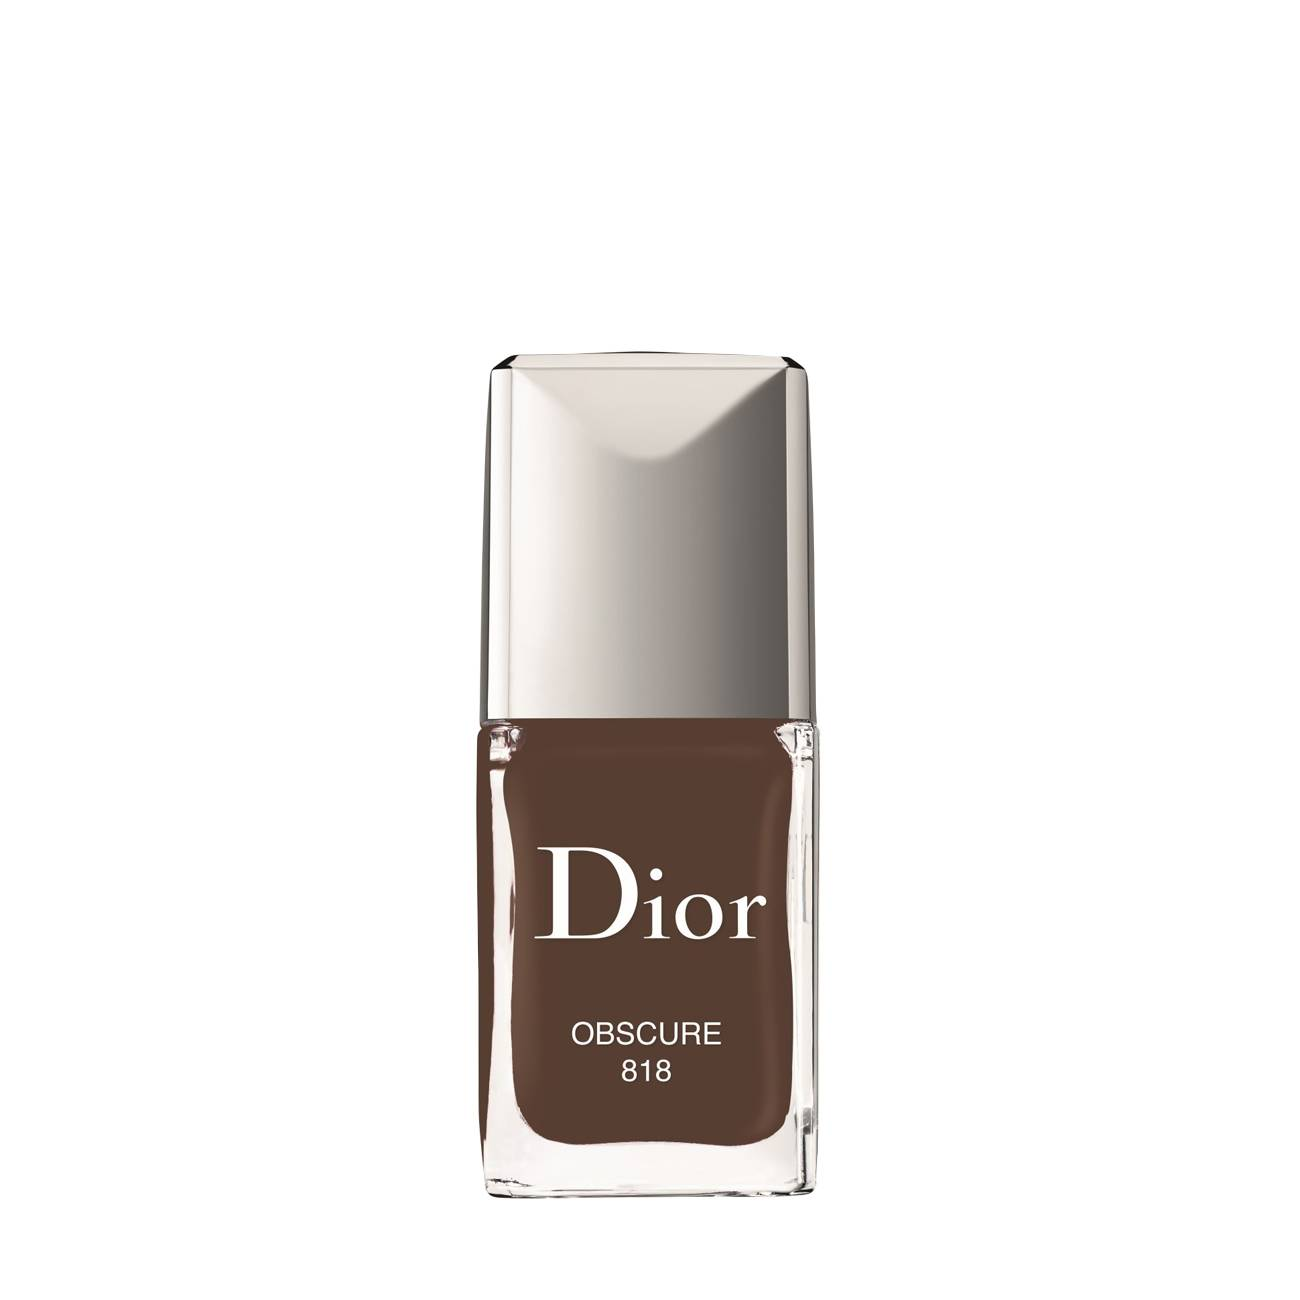 Vernis 818 7 Ml Dior imagine 2021 bestvalue.eu